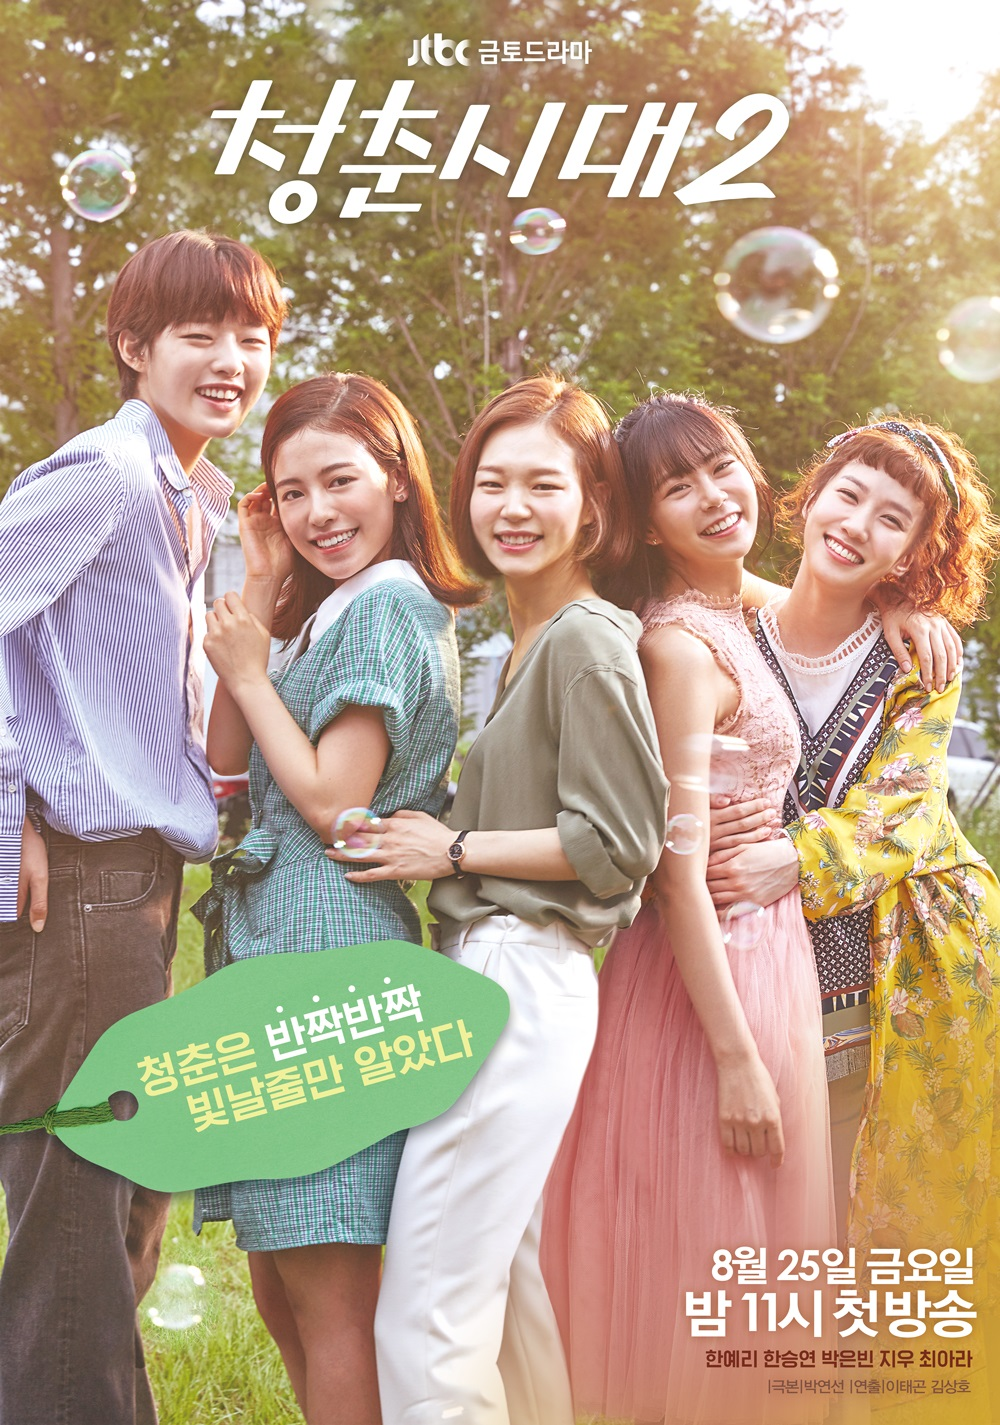 Sinopsis hope for dating ep 2